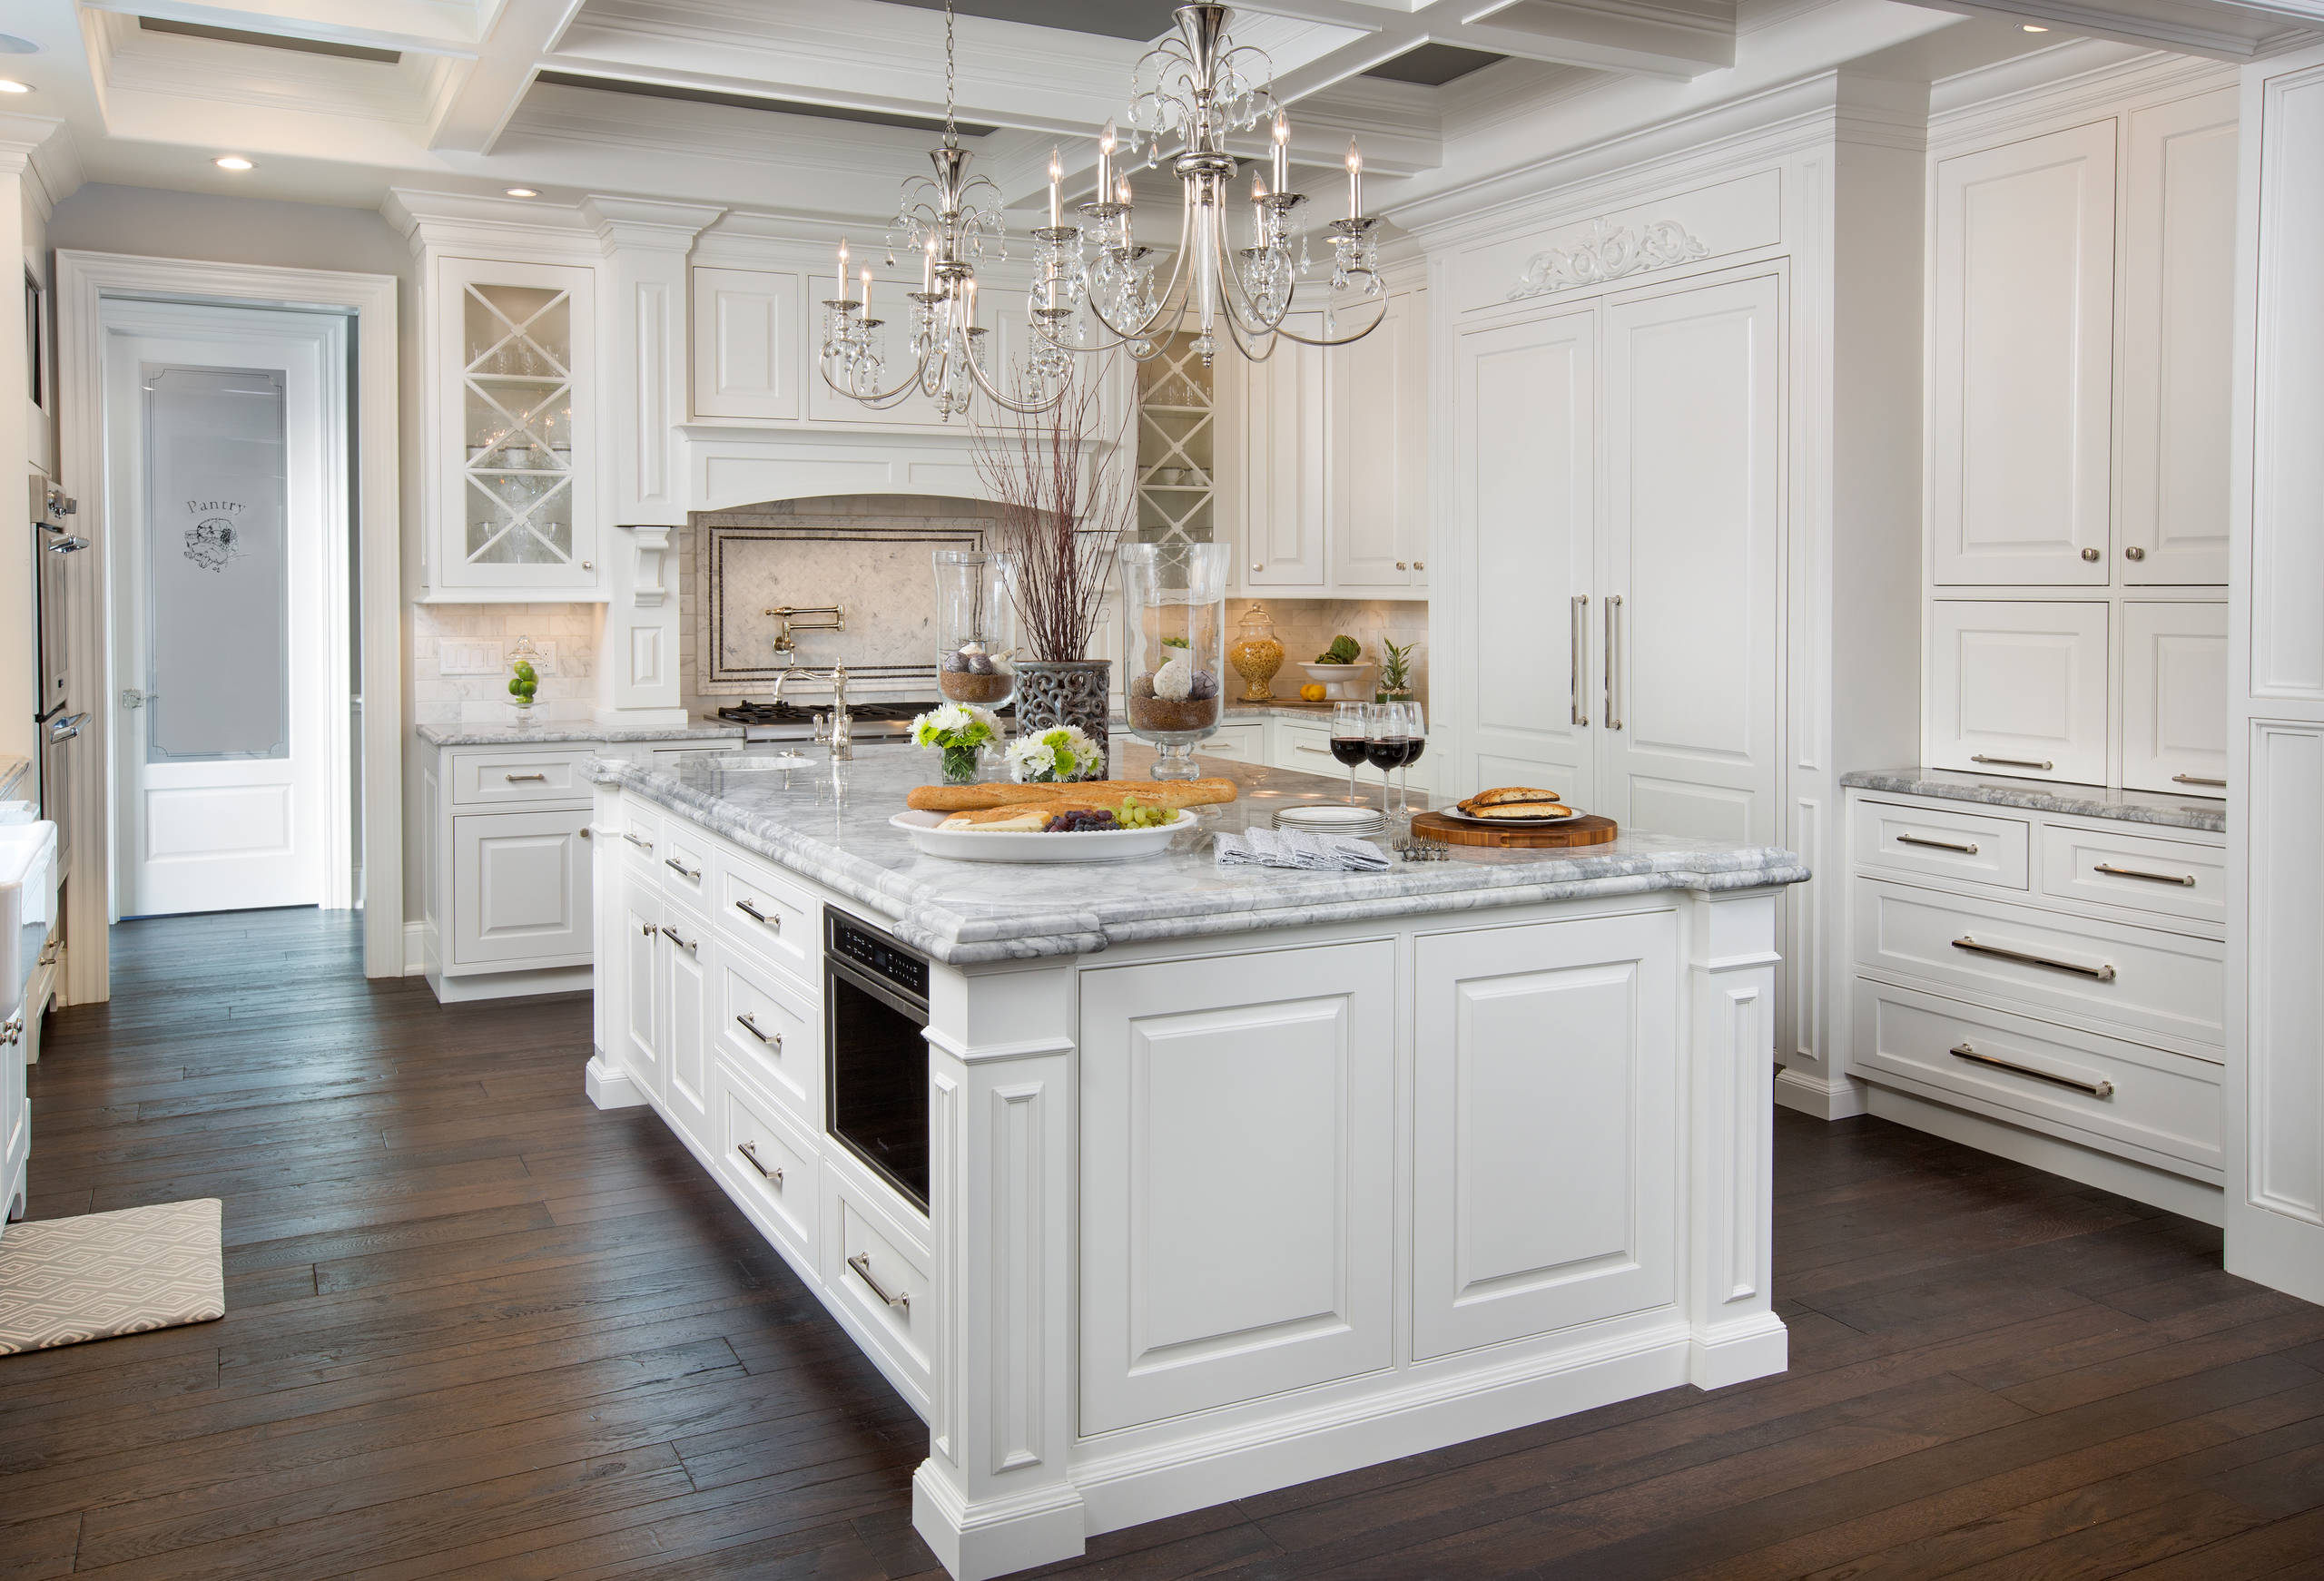 What Color Countertops Go With White Cabinets 7 Steps To Decorating Your Dream Kitchen Make Sure To